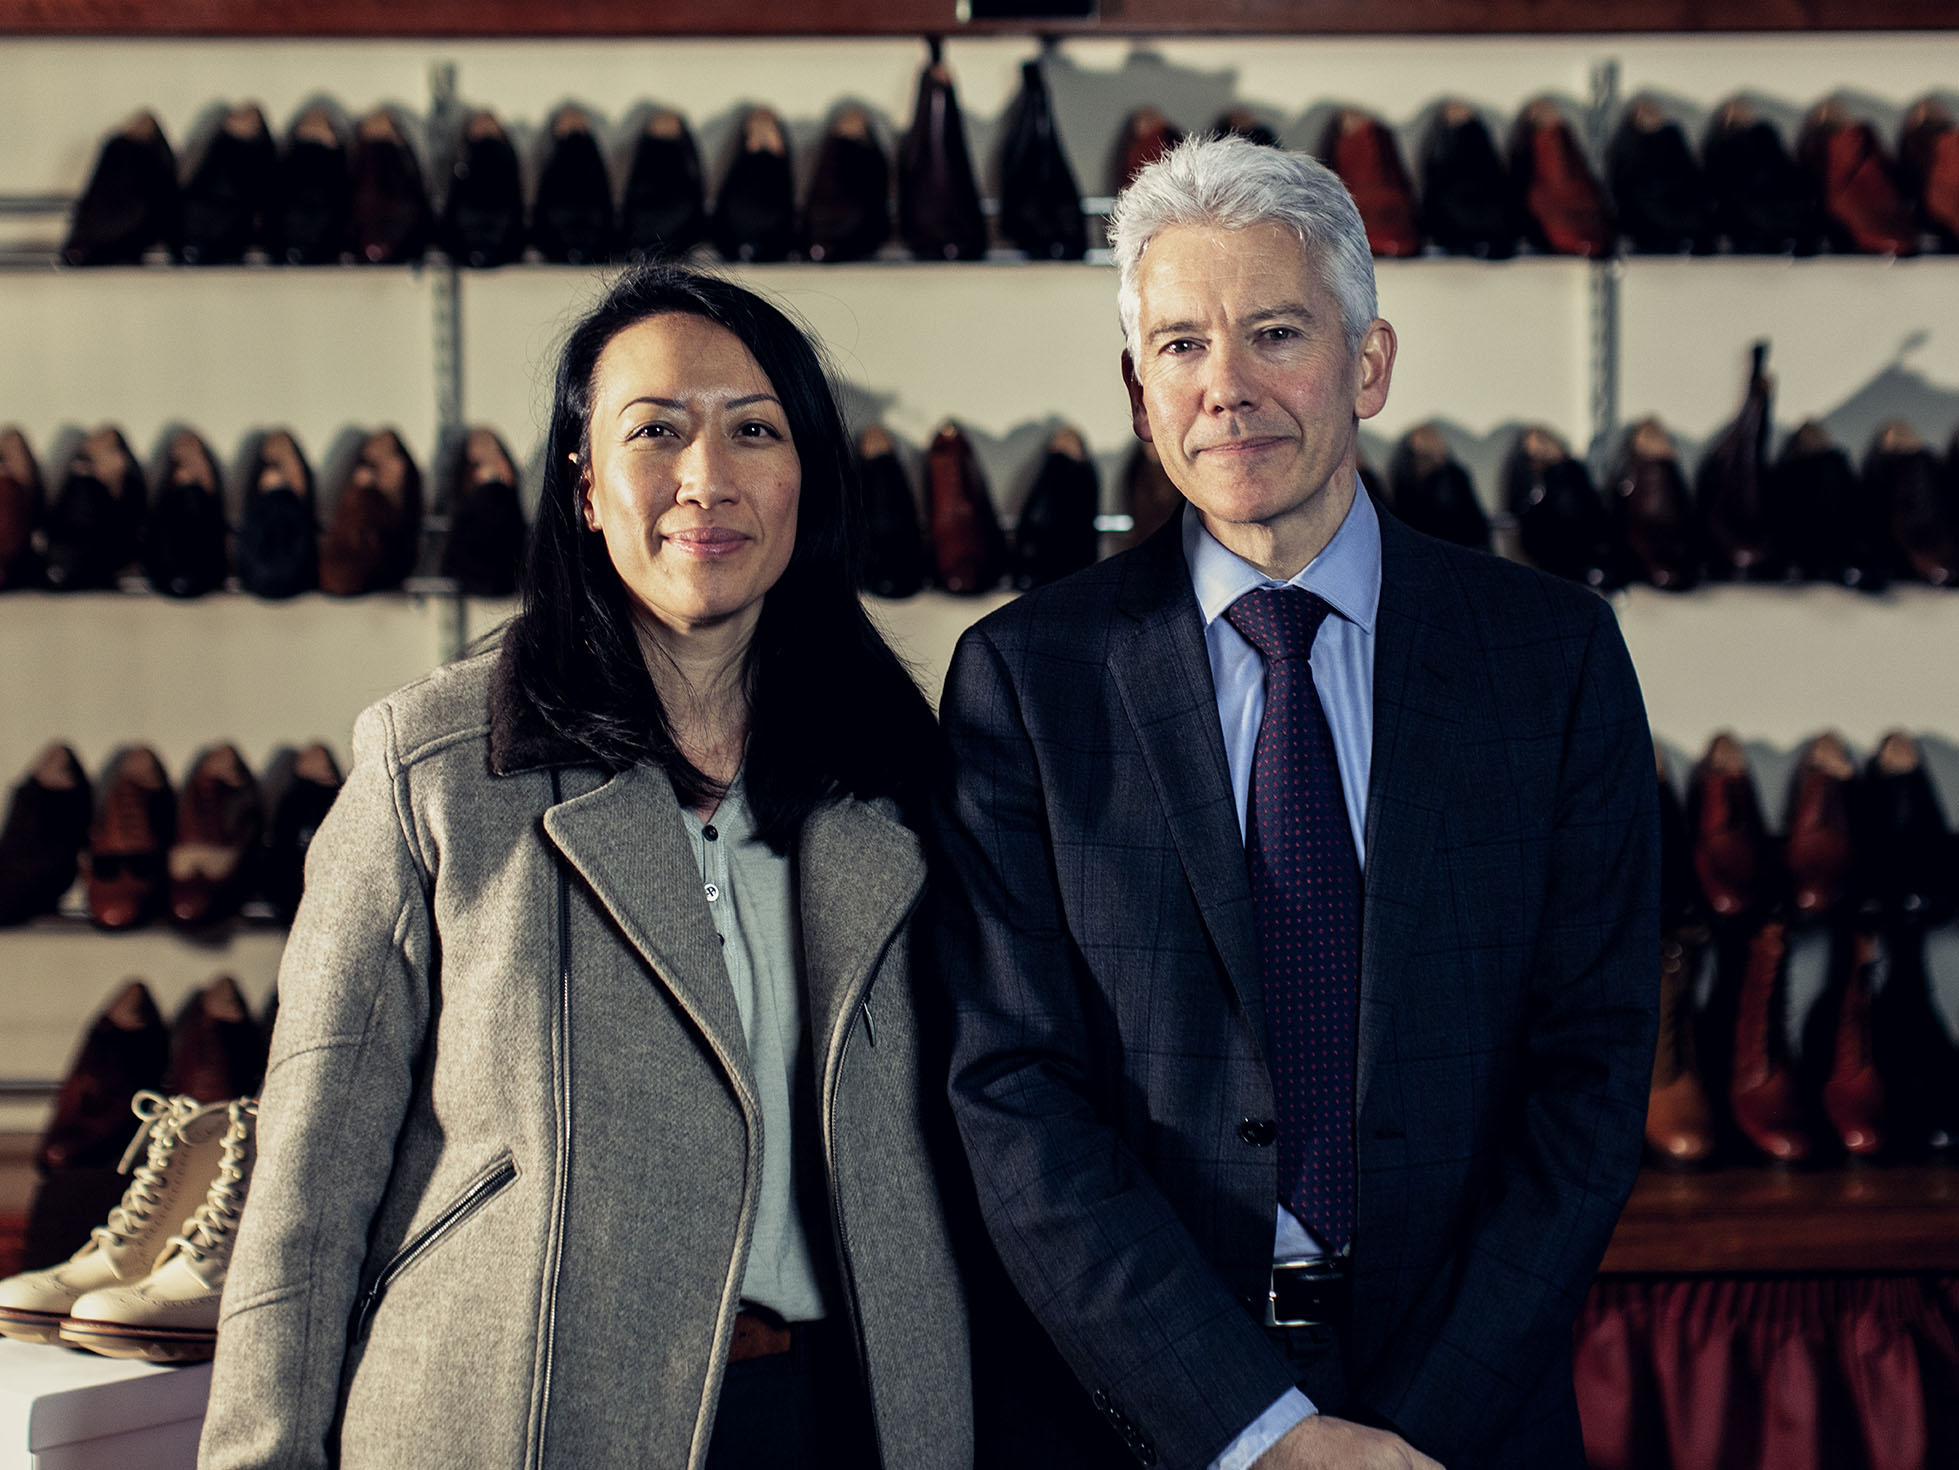 Nancy (Tengri) pictured here with Jonathan Church (Joseph Cheaney & Sons)